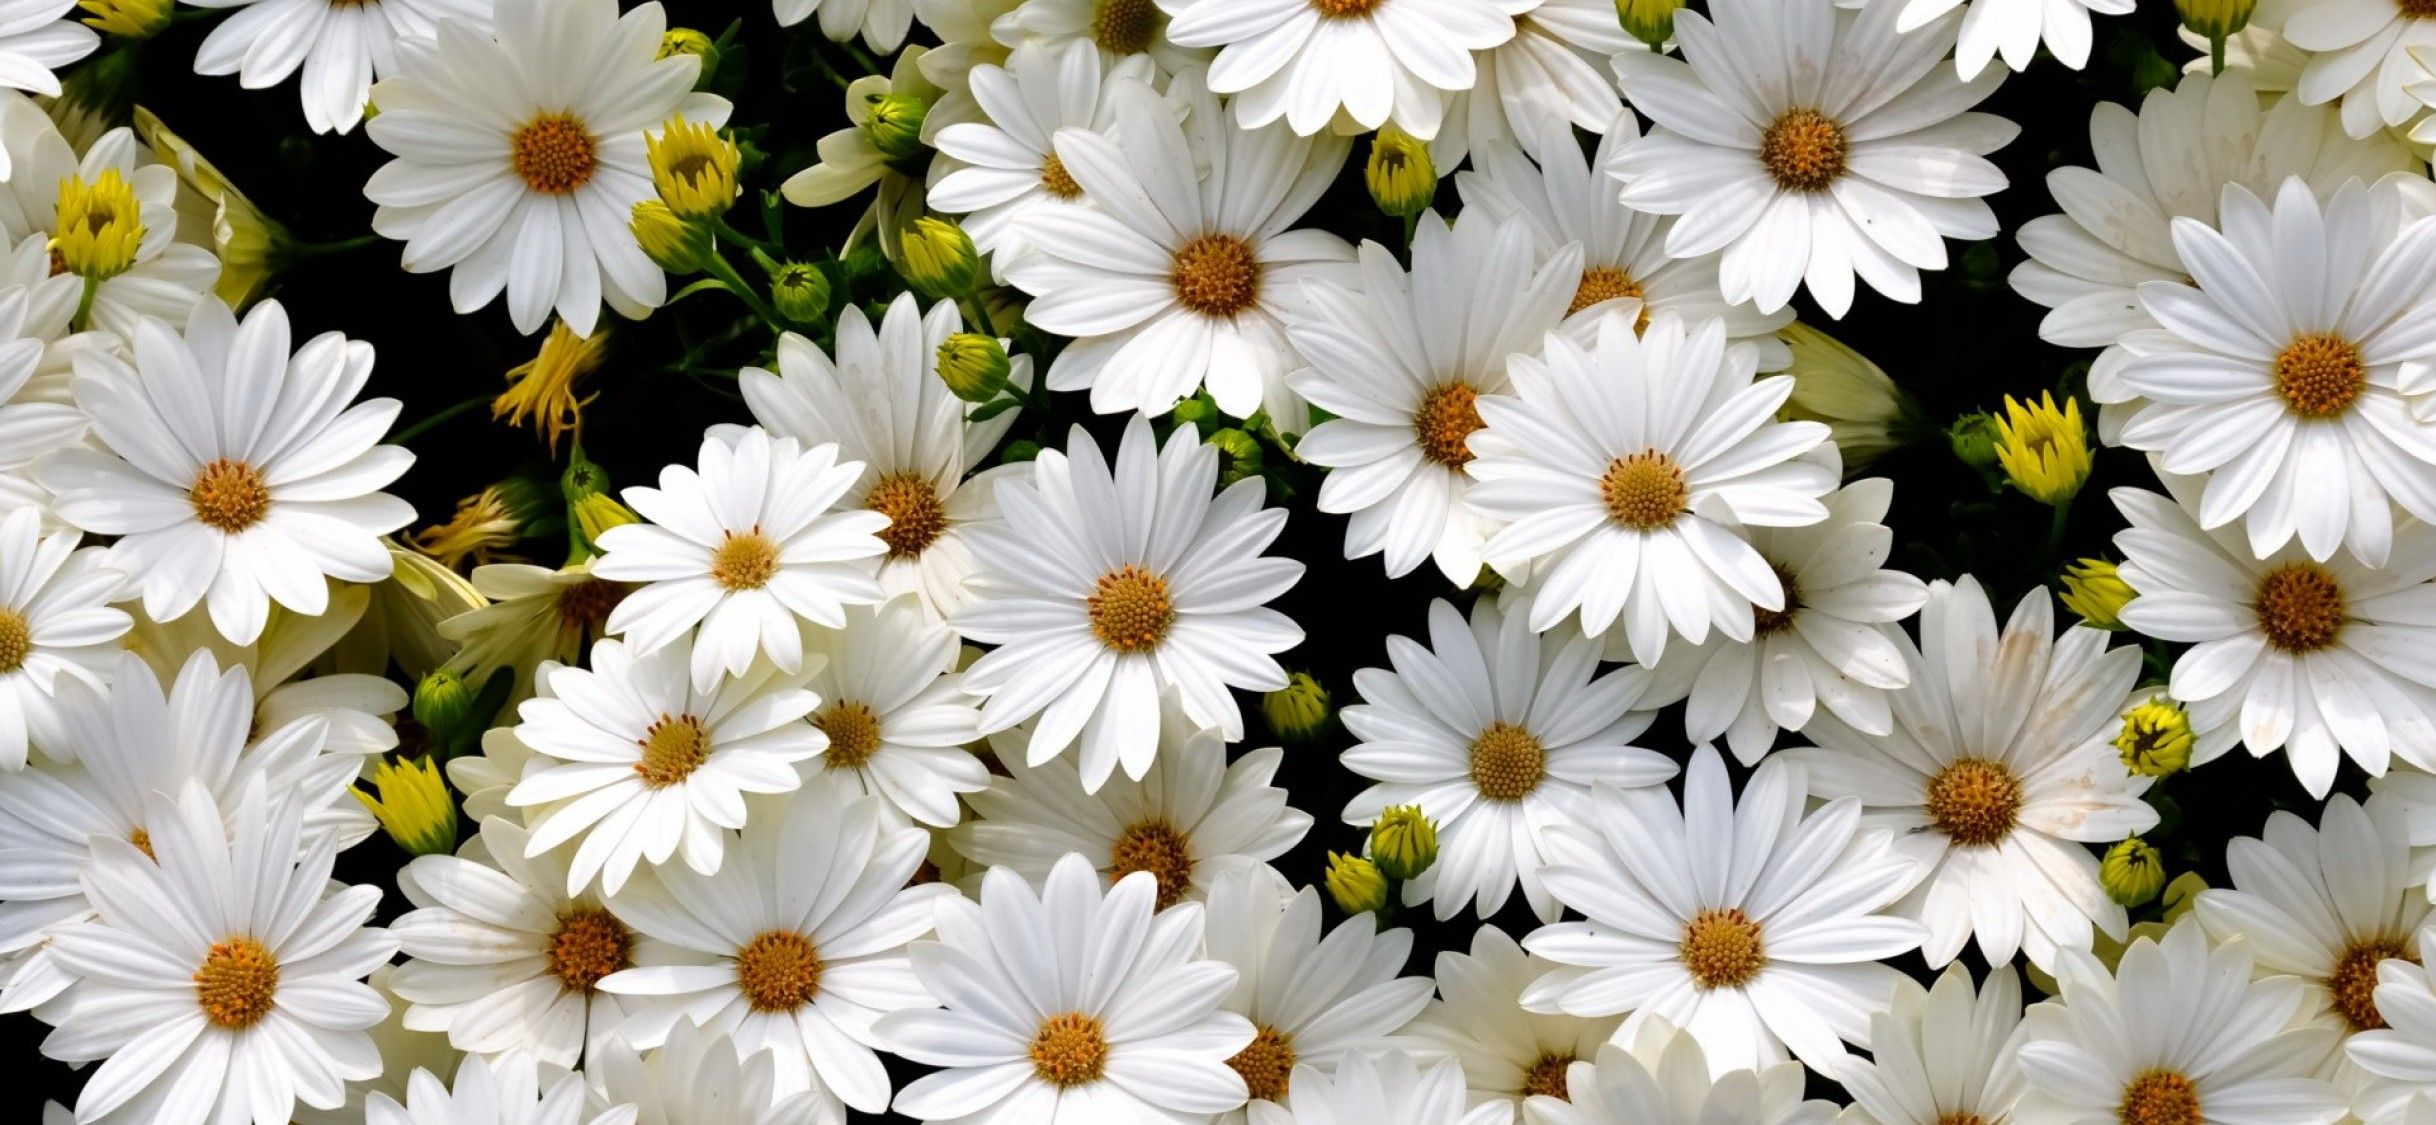 White Daisies Iphone X Hd Wallpaper Wallpapers Net